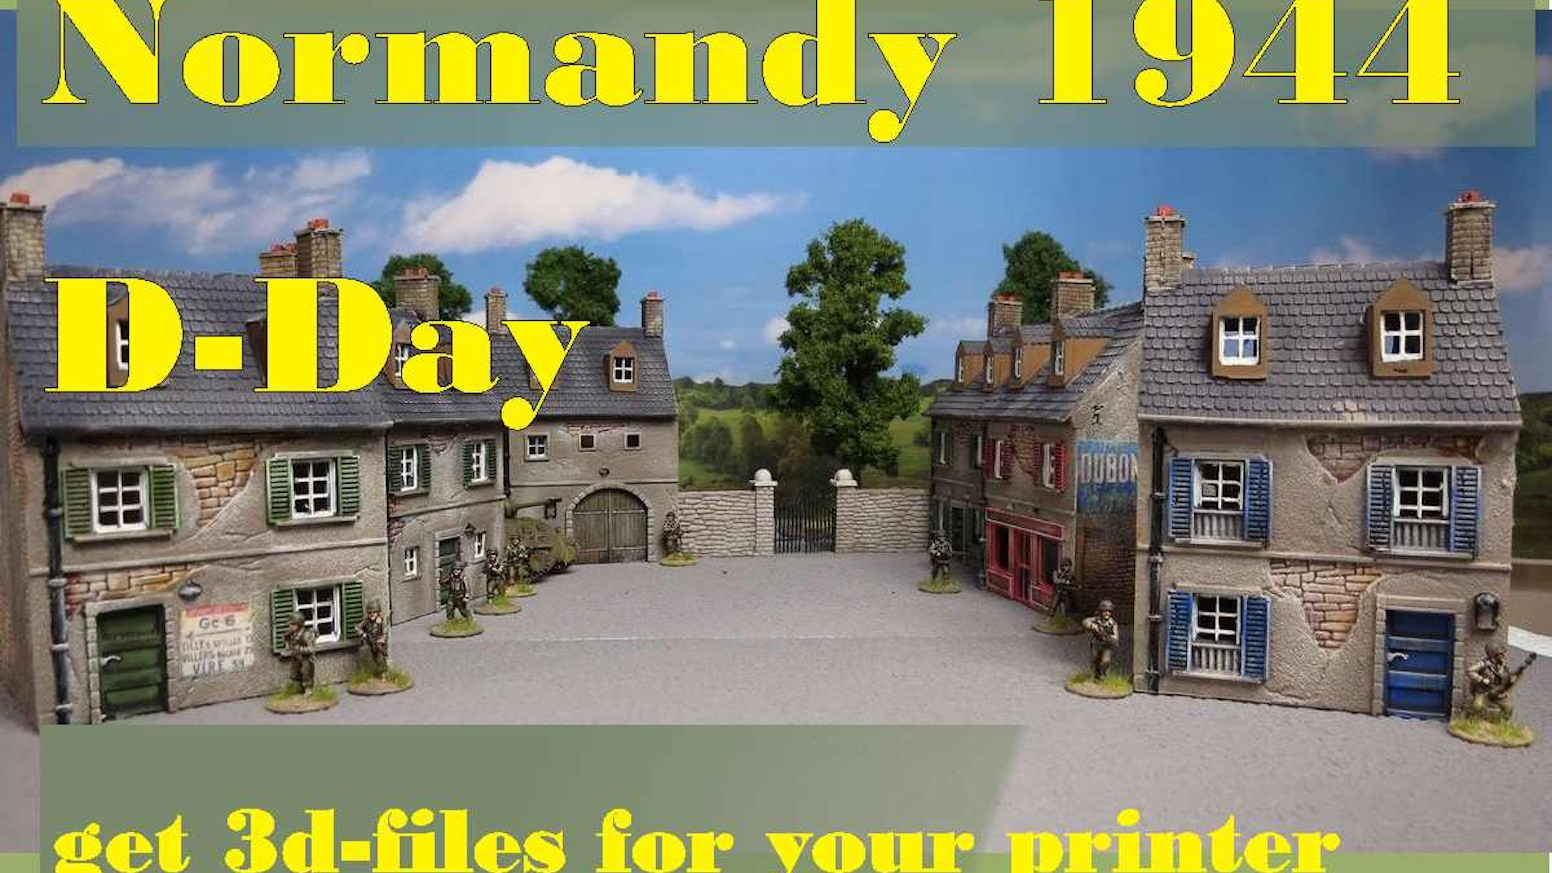 A complete range of STL-files of various Normandy-style buildings, printable on your 3D printer